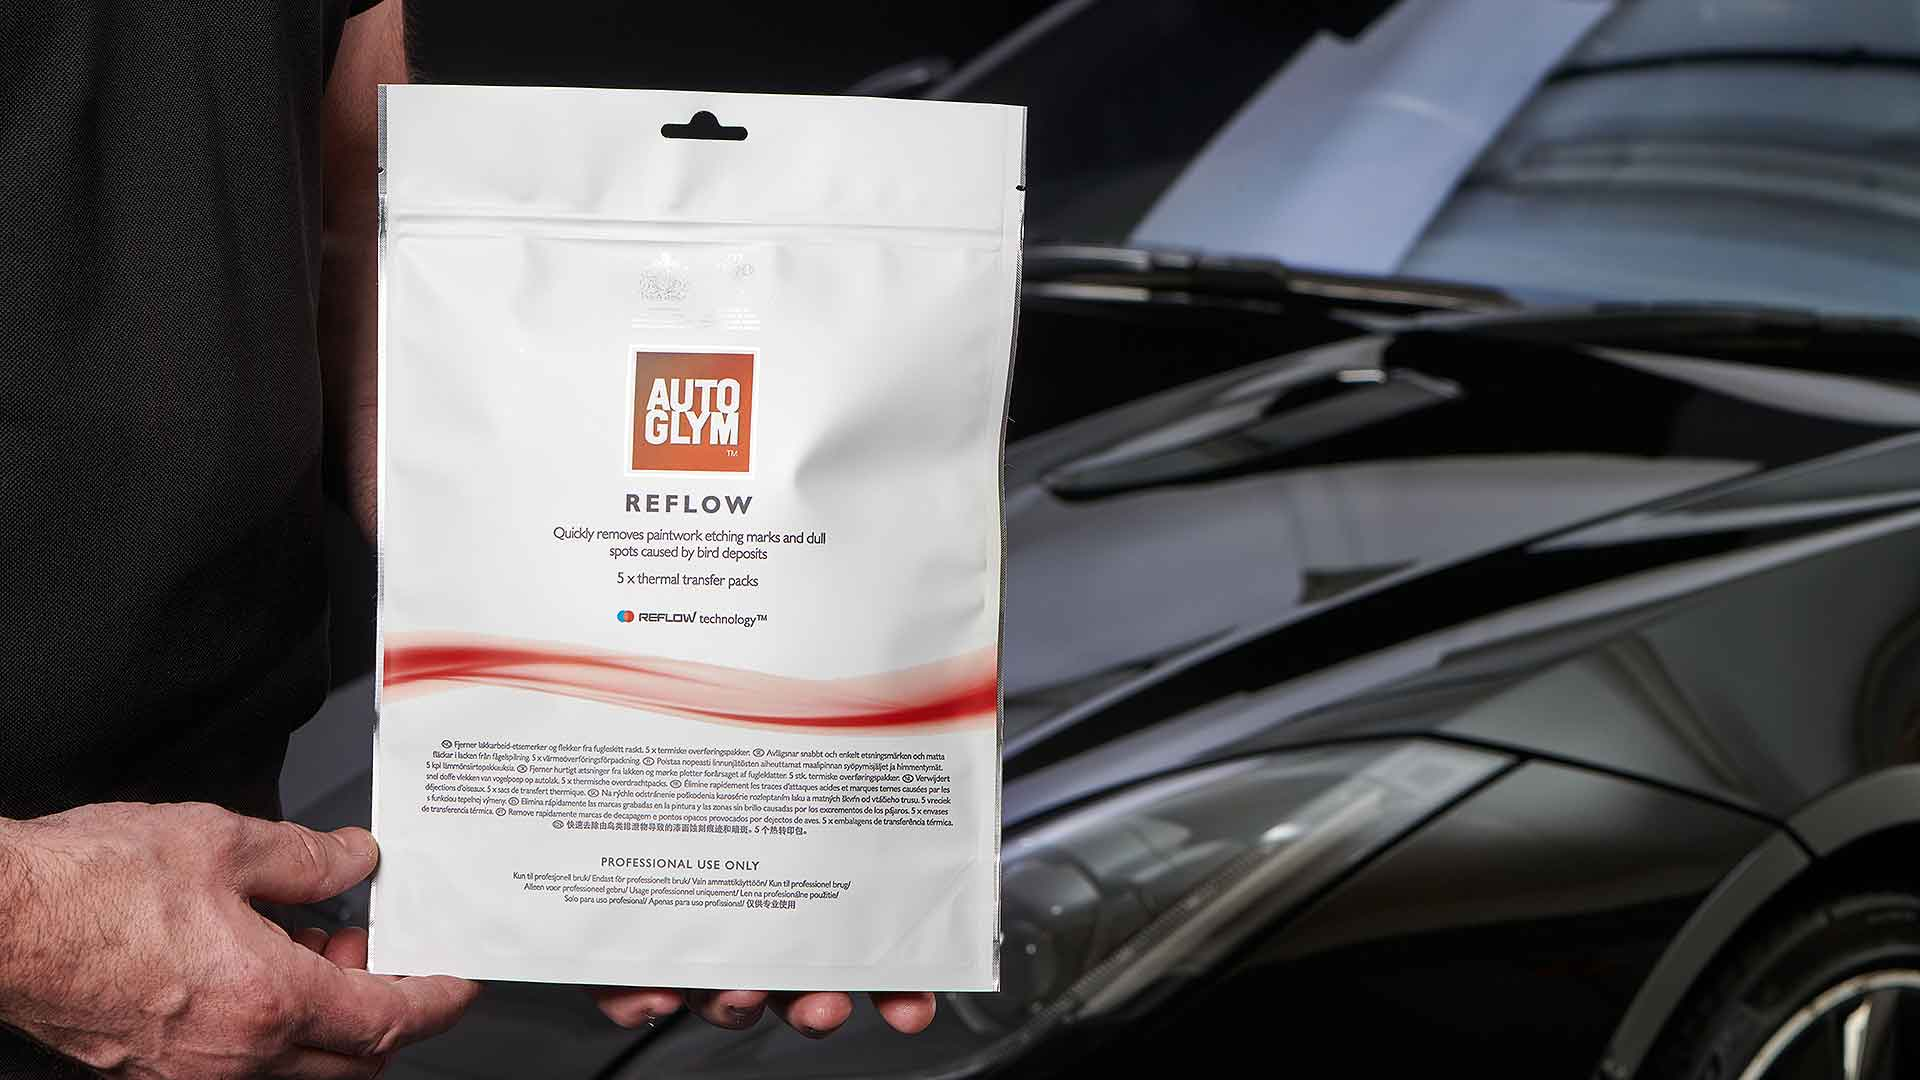 Autoglym Reflow product packaging